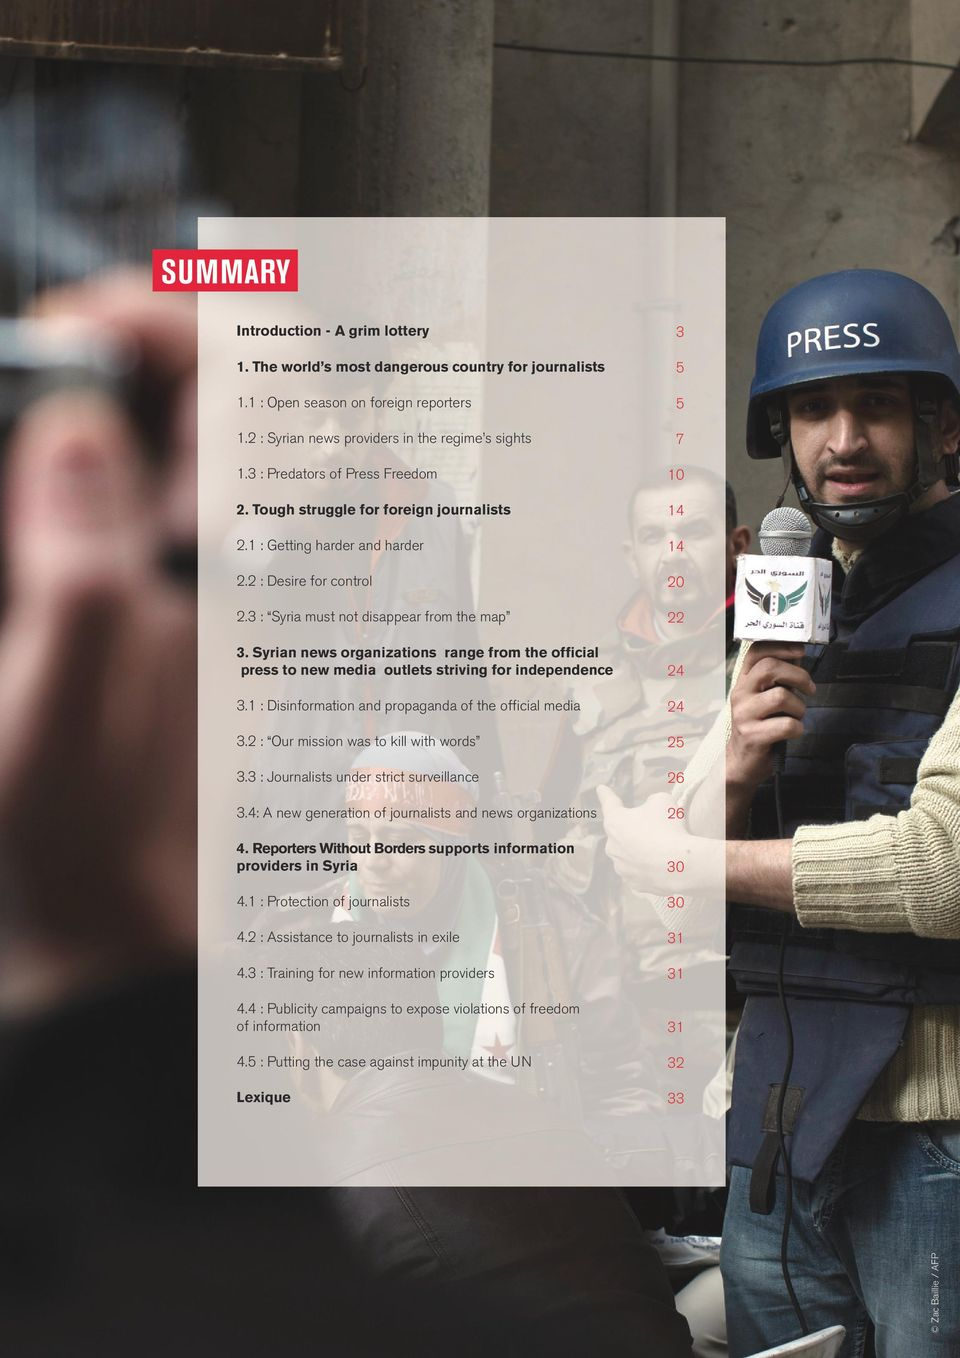 Syrian news organizations range from the official press to new media outlets striving for independence 3.1 : Disinformation and propaganda of the official media 3.